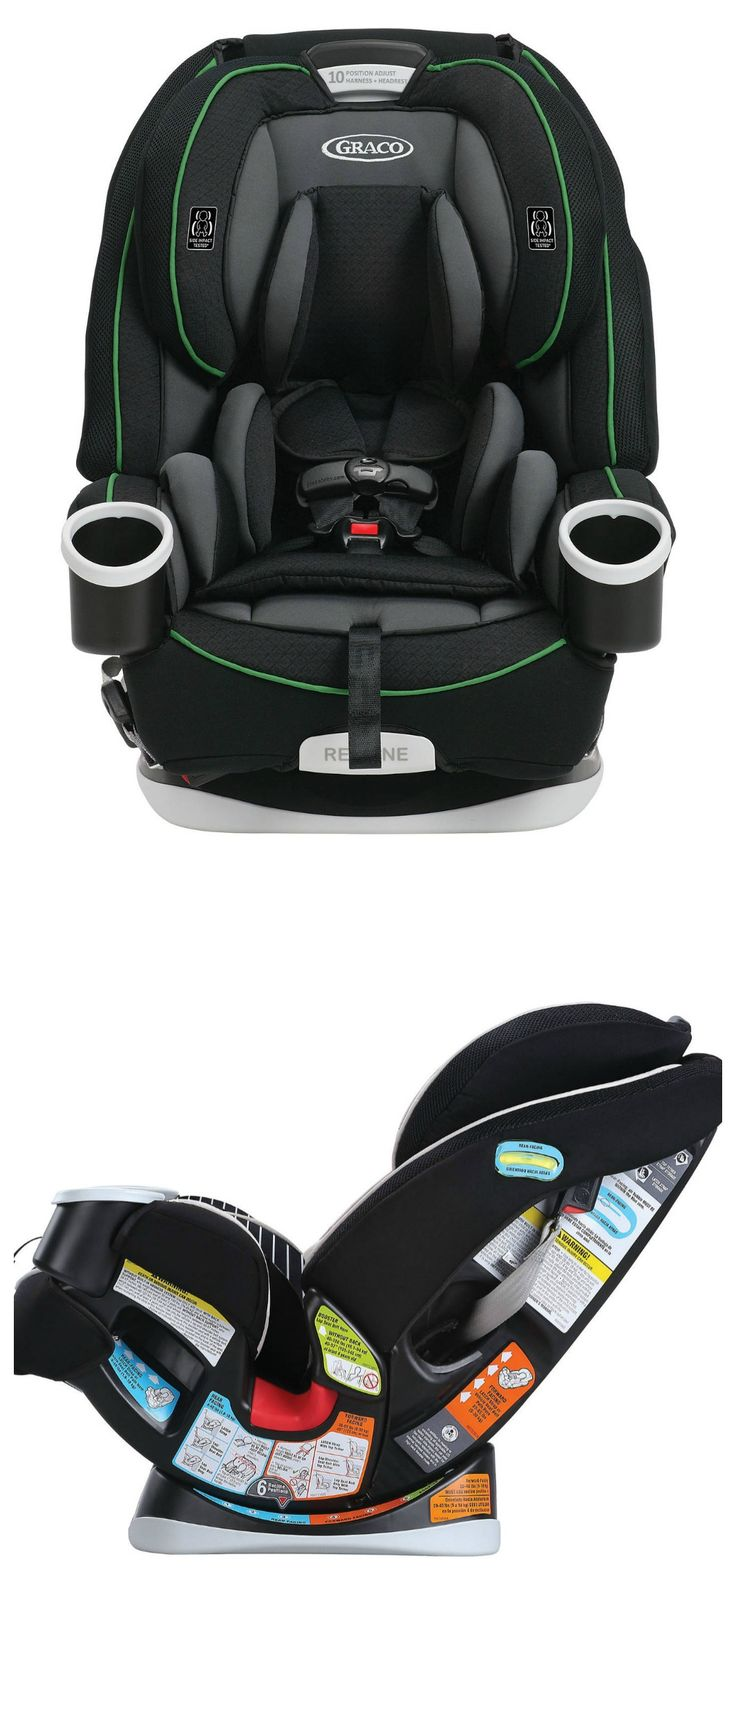 Our list of the best convertible car seats include the Graco  Graco 4Ever All‑in‑One Car Seat. Why We Love It: The Graco 4Ever All-in-1 Car Seat gives you 10 years of use. It features a Simply Safe Adjust Harness System where you can easily adjust the height of your harness and headrest in just one motion so you will never have the hassle of...Continue Reading